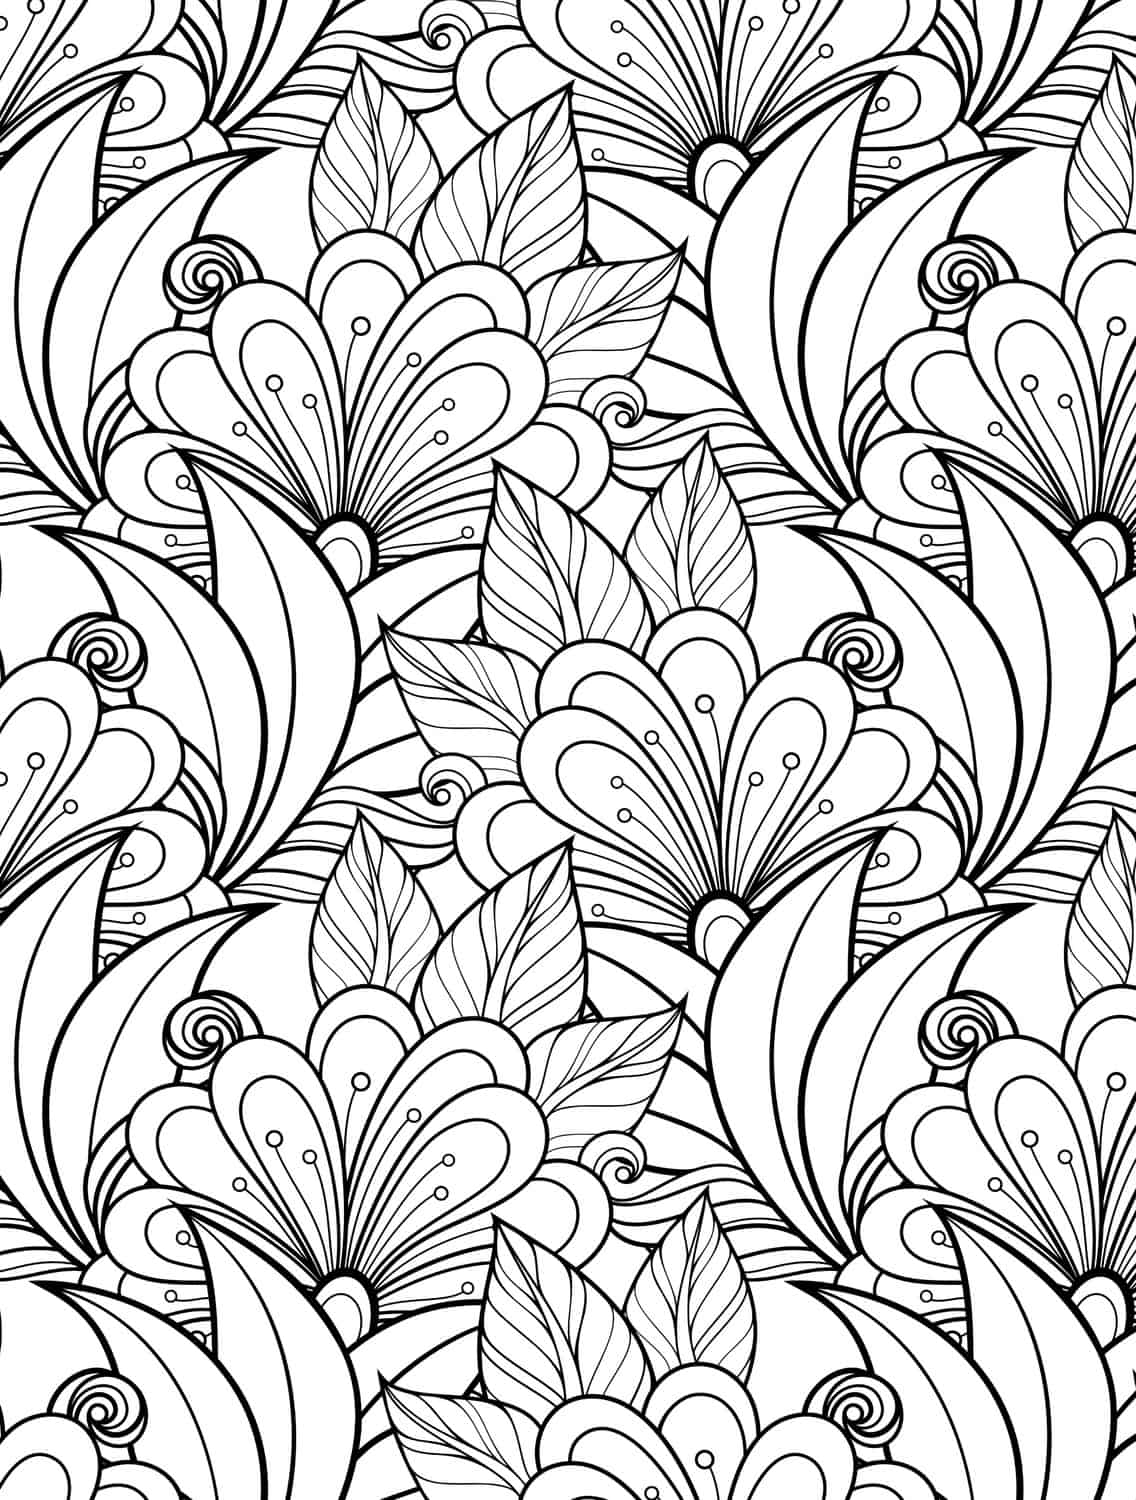 24 More Free Printable Adult Coloring Pages Page 7 of 25 Nerdy Mamma